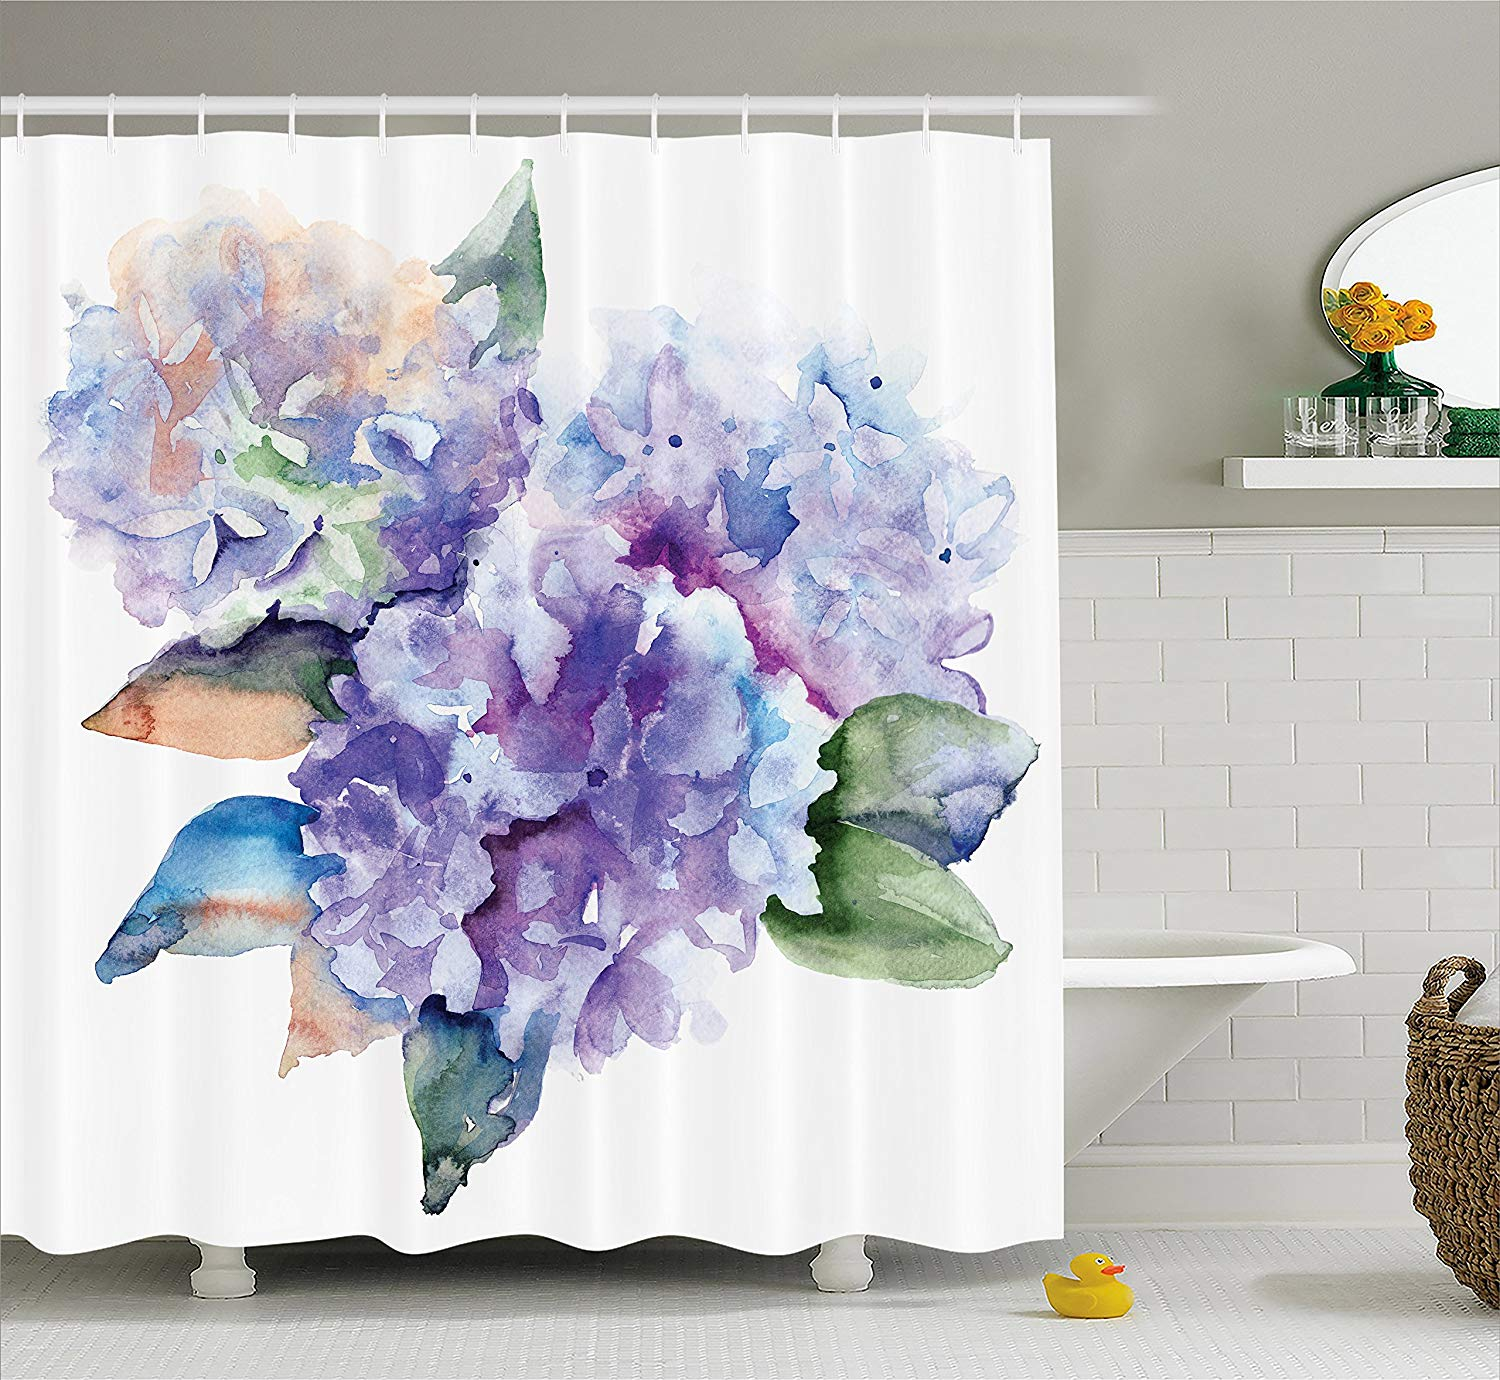 Watercolor Shower Curtain Delicate